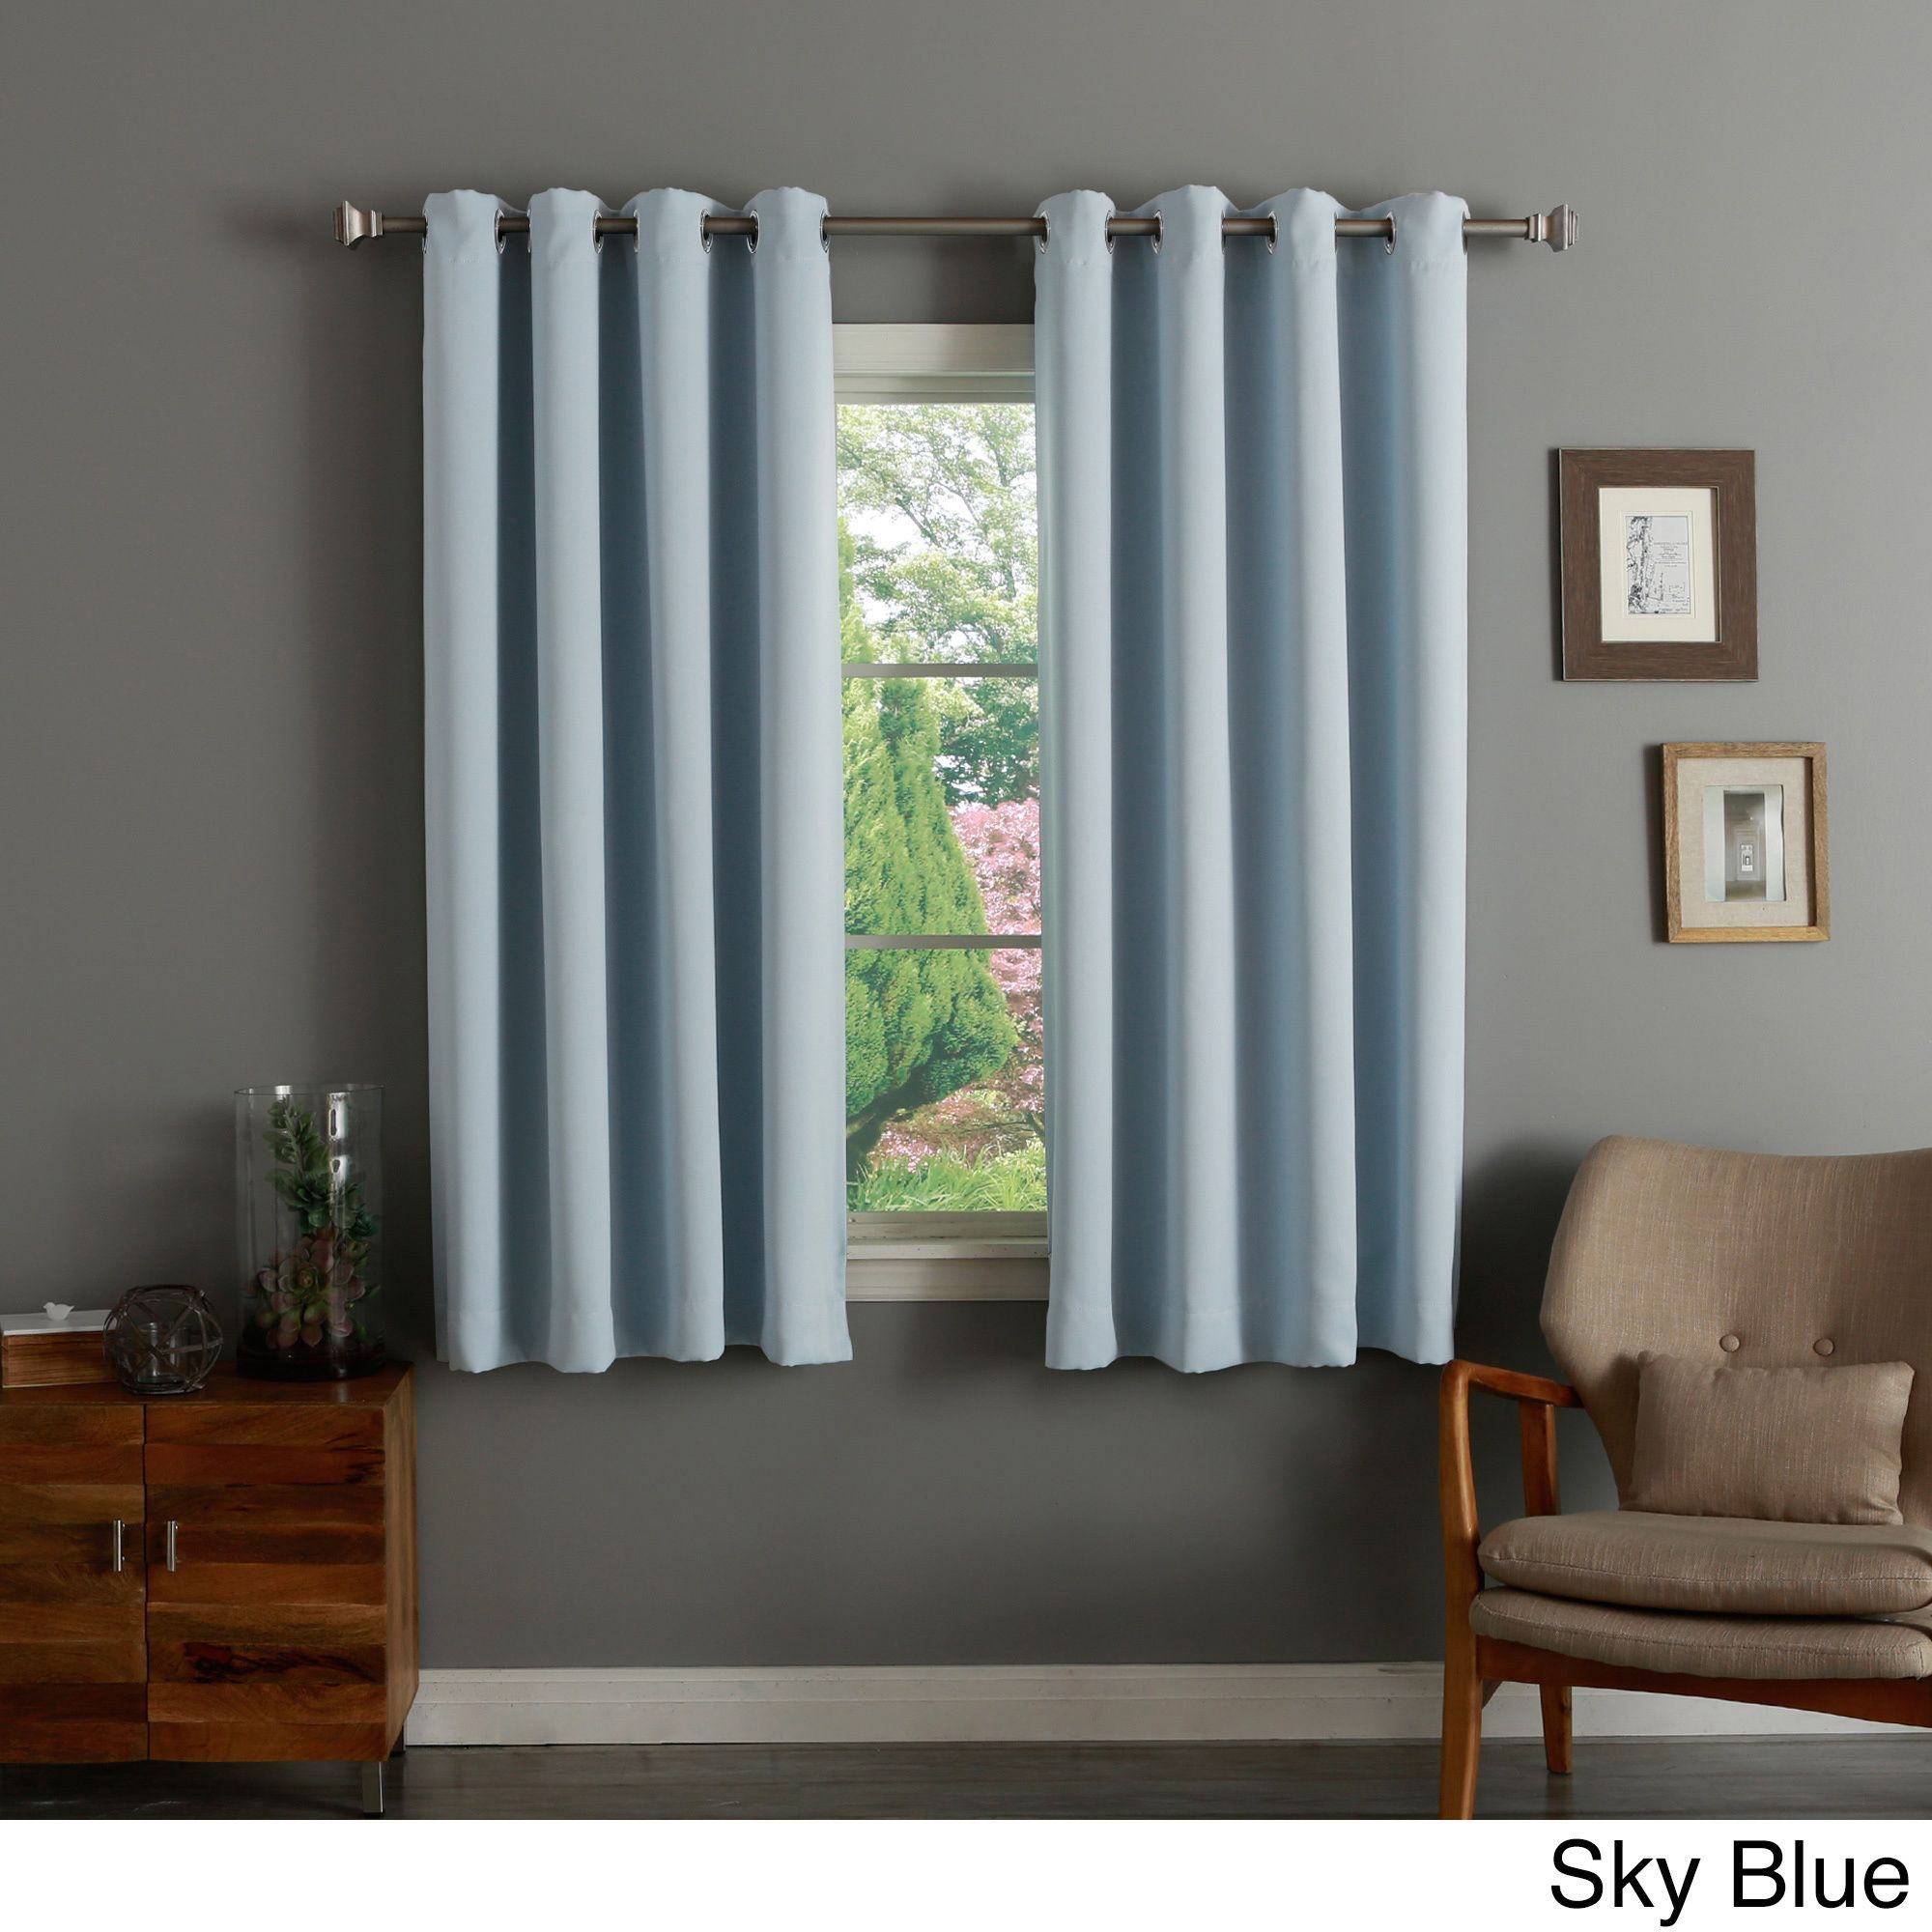 Aurora Home 52 Inch X 63 Inch Silvertone Grommet Top Thermal Pertaining To Silvertone Grommet Thermal Insulated Blackout Curtain Panel Pairs (View 3 of 30)